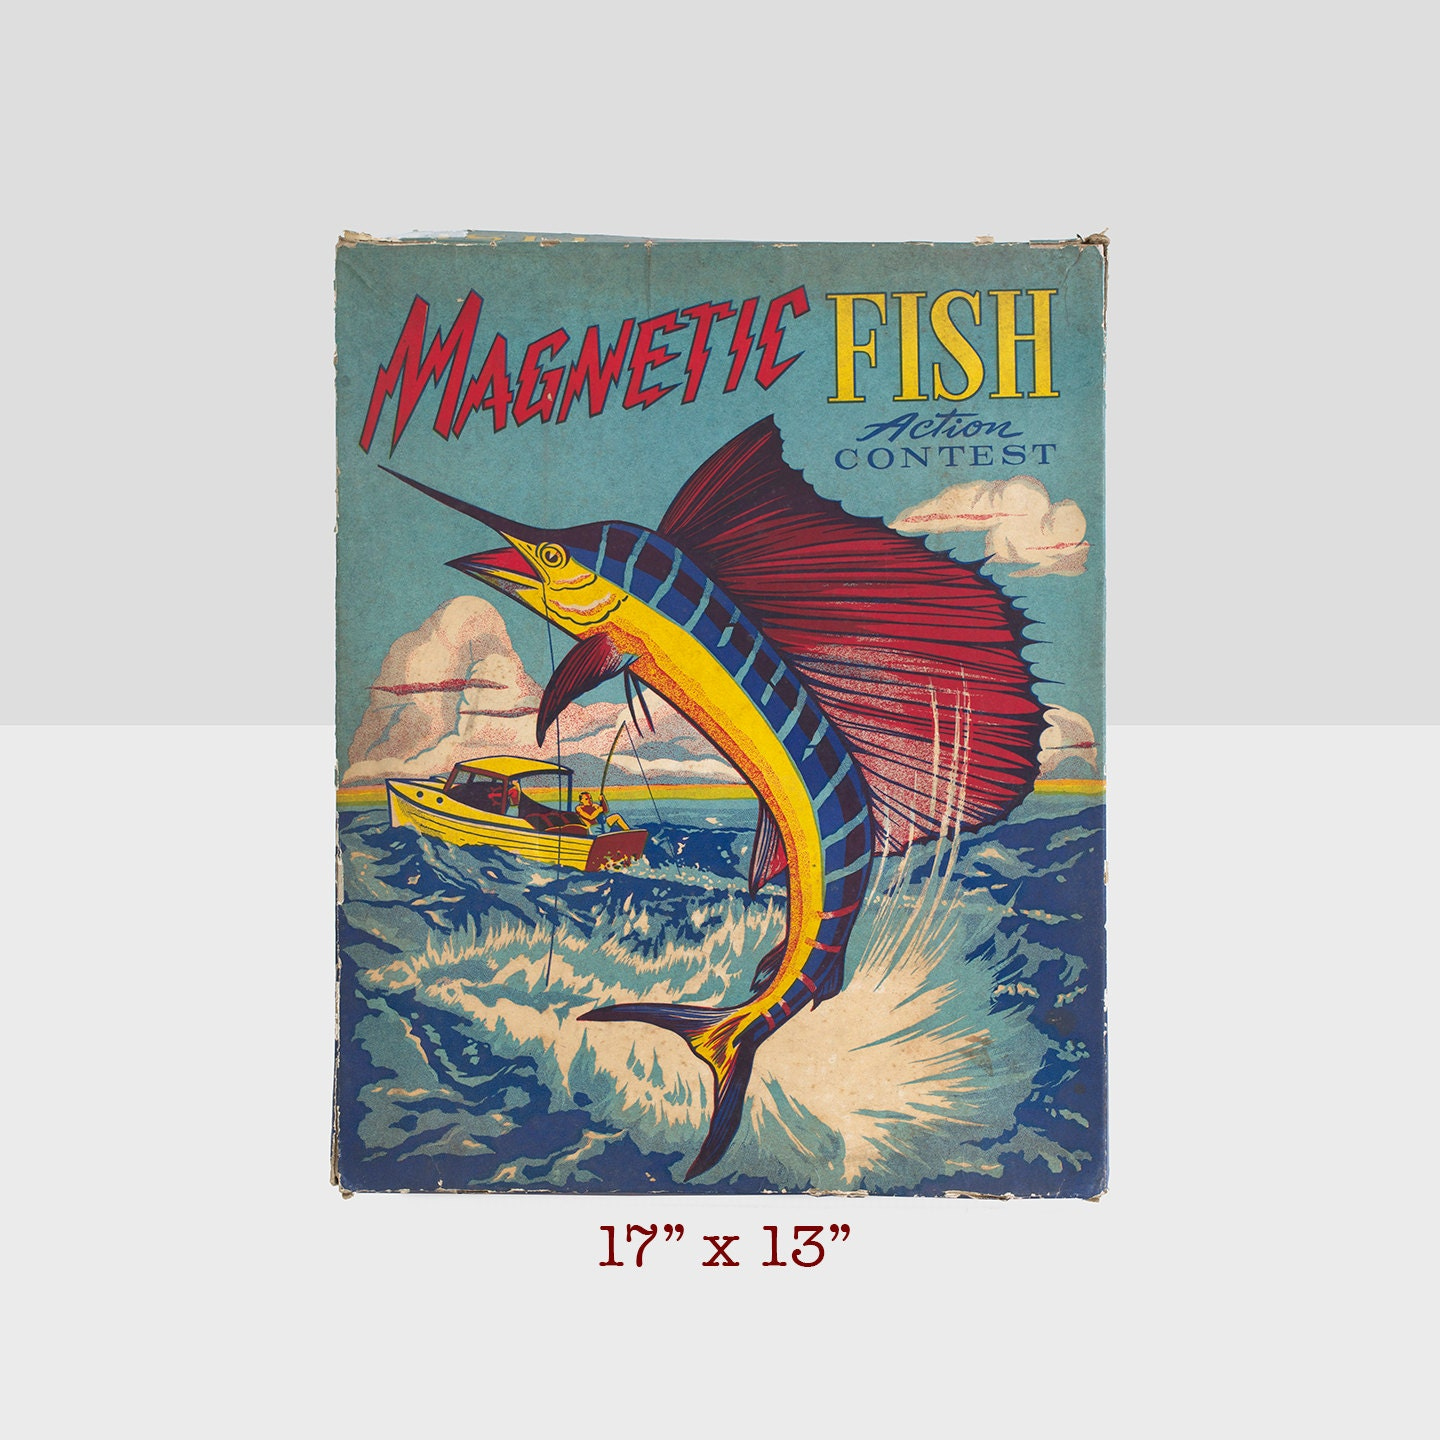 Magnetic fish game transogram company game vintage magnetic for Illinois game and fish